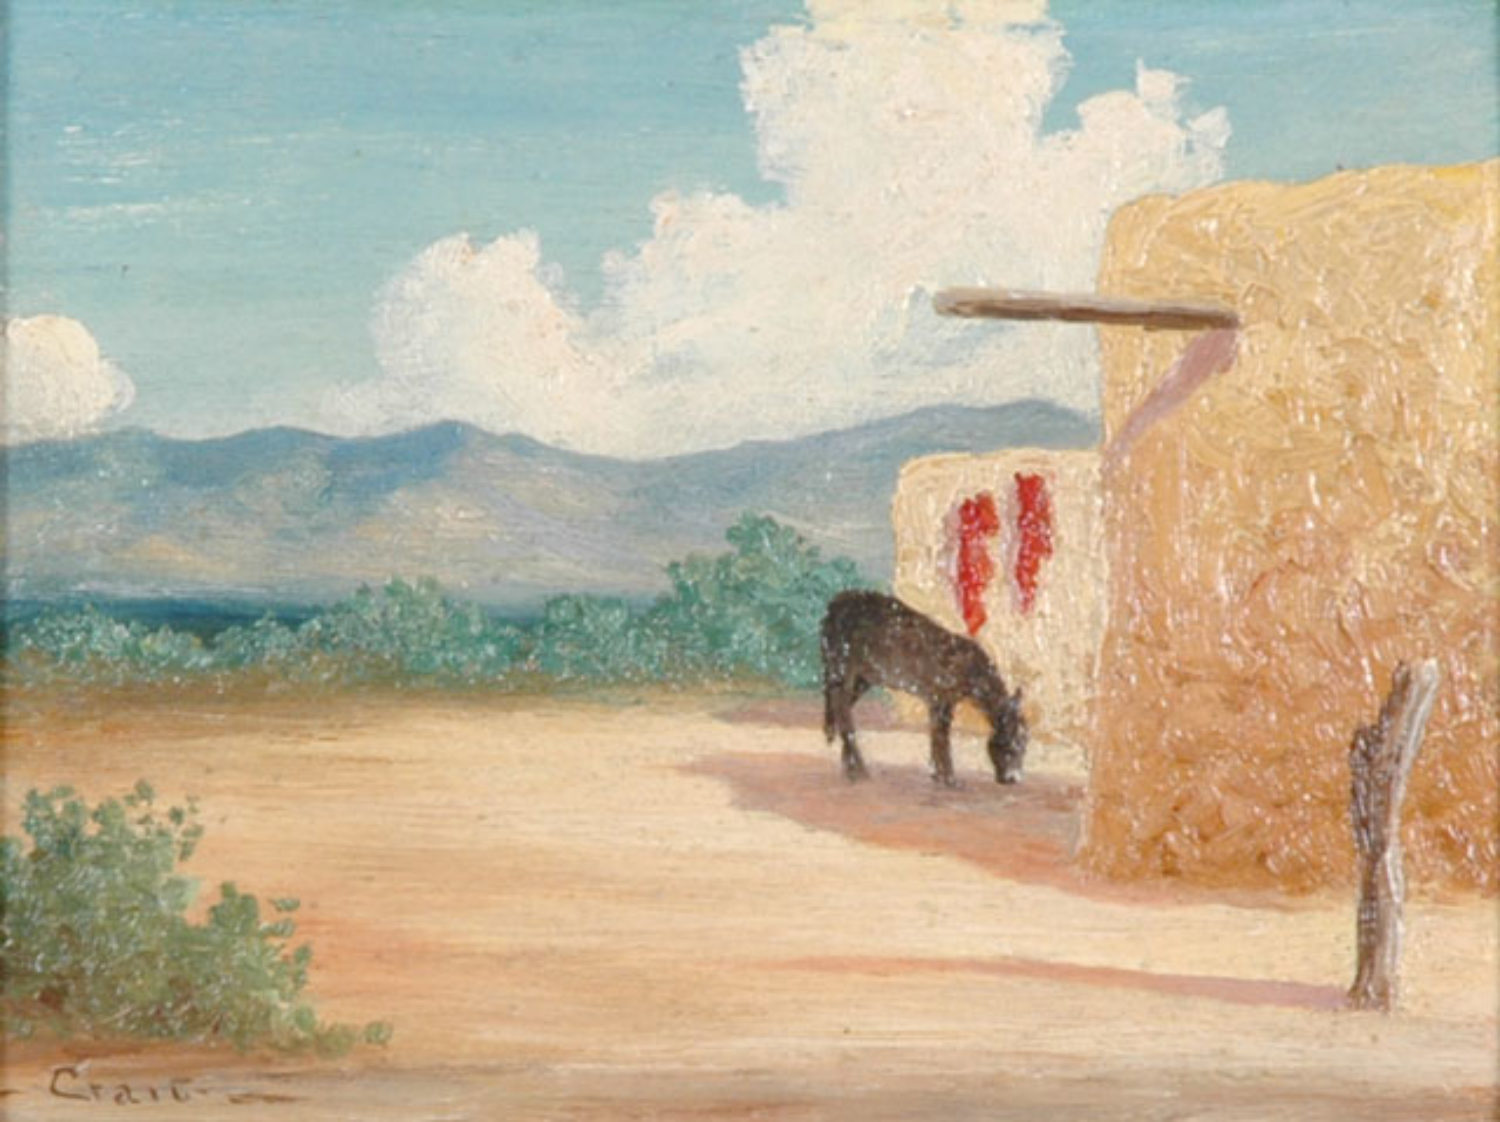 New Mexico Adobes with Burro